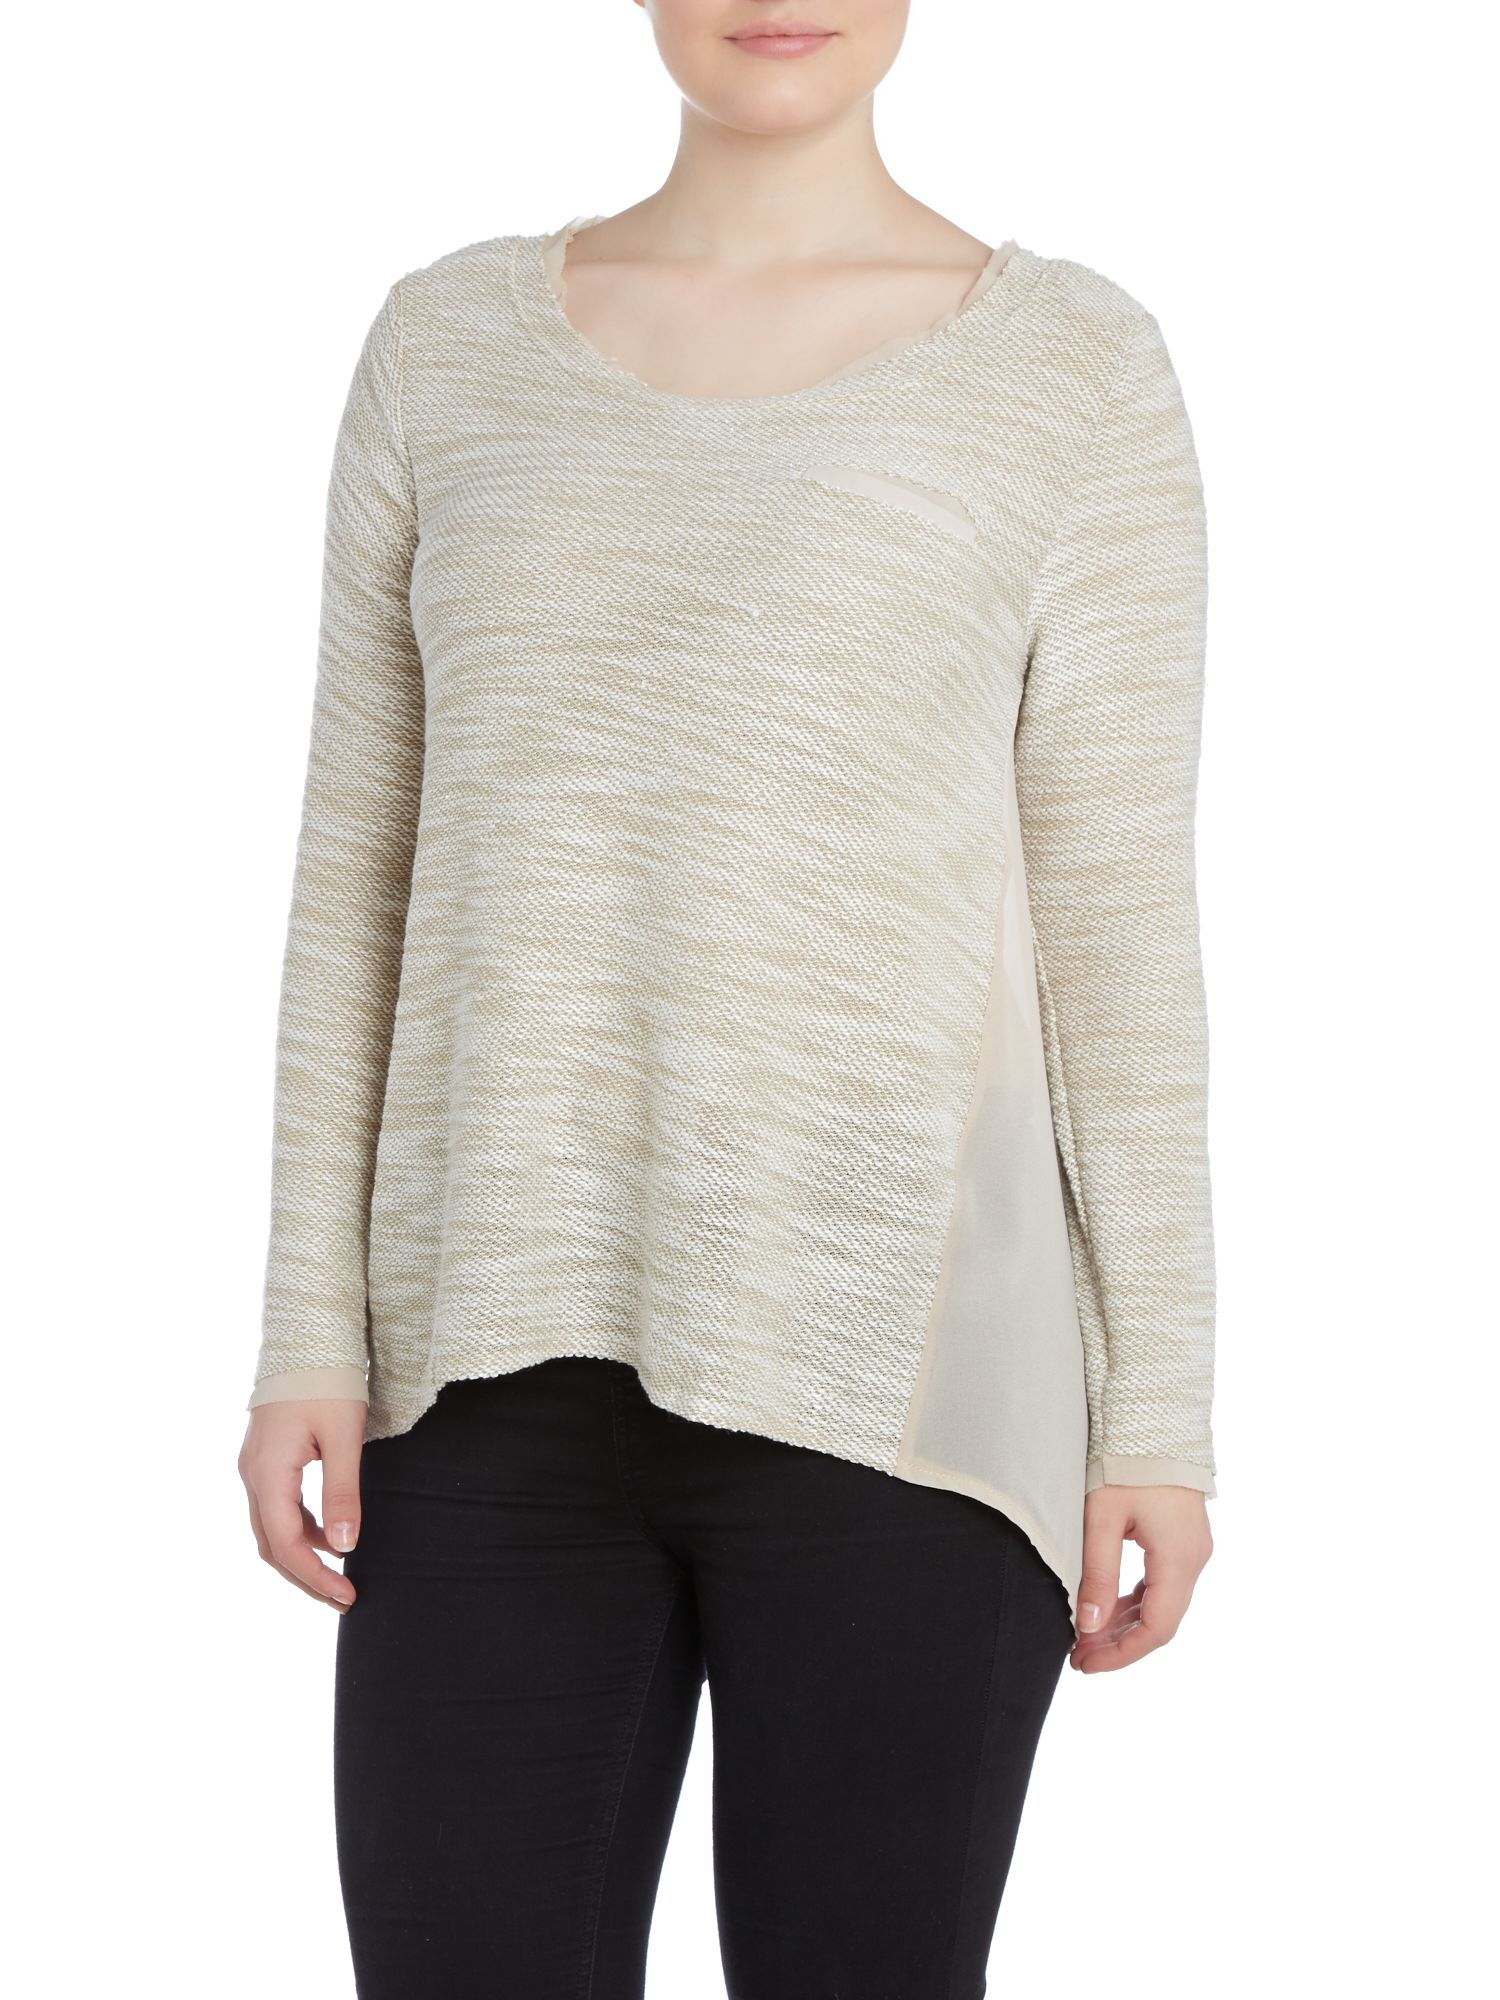 Embellished sheer panel top